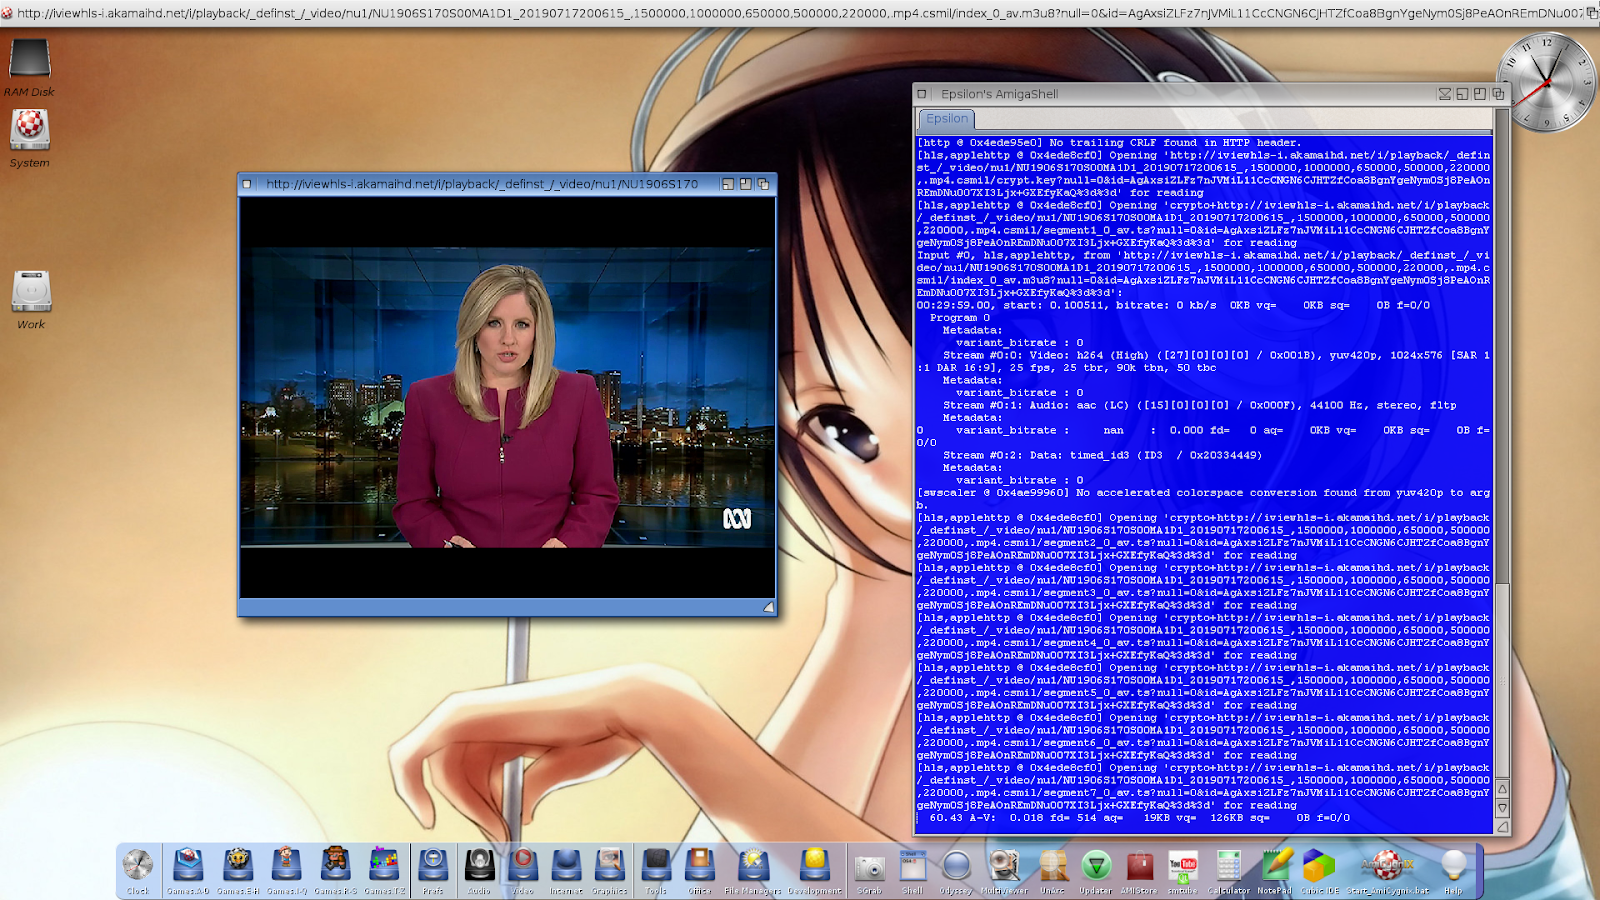 ABC iView TV streaming and downloading preview on X5000 | AmigaBlogs